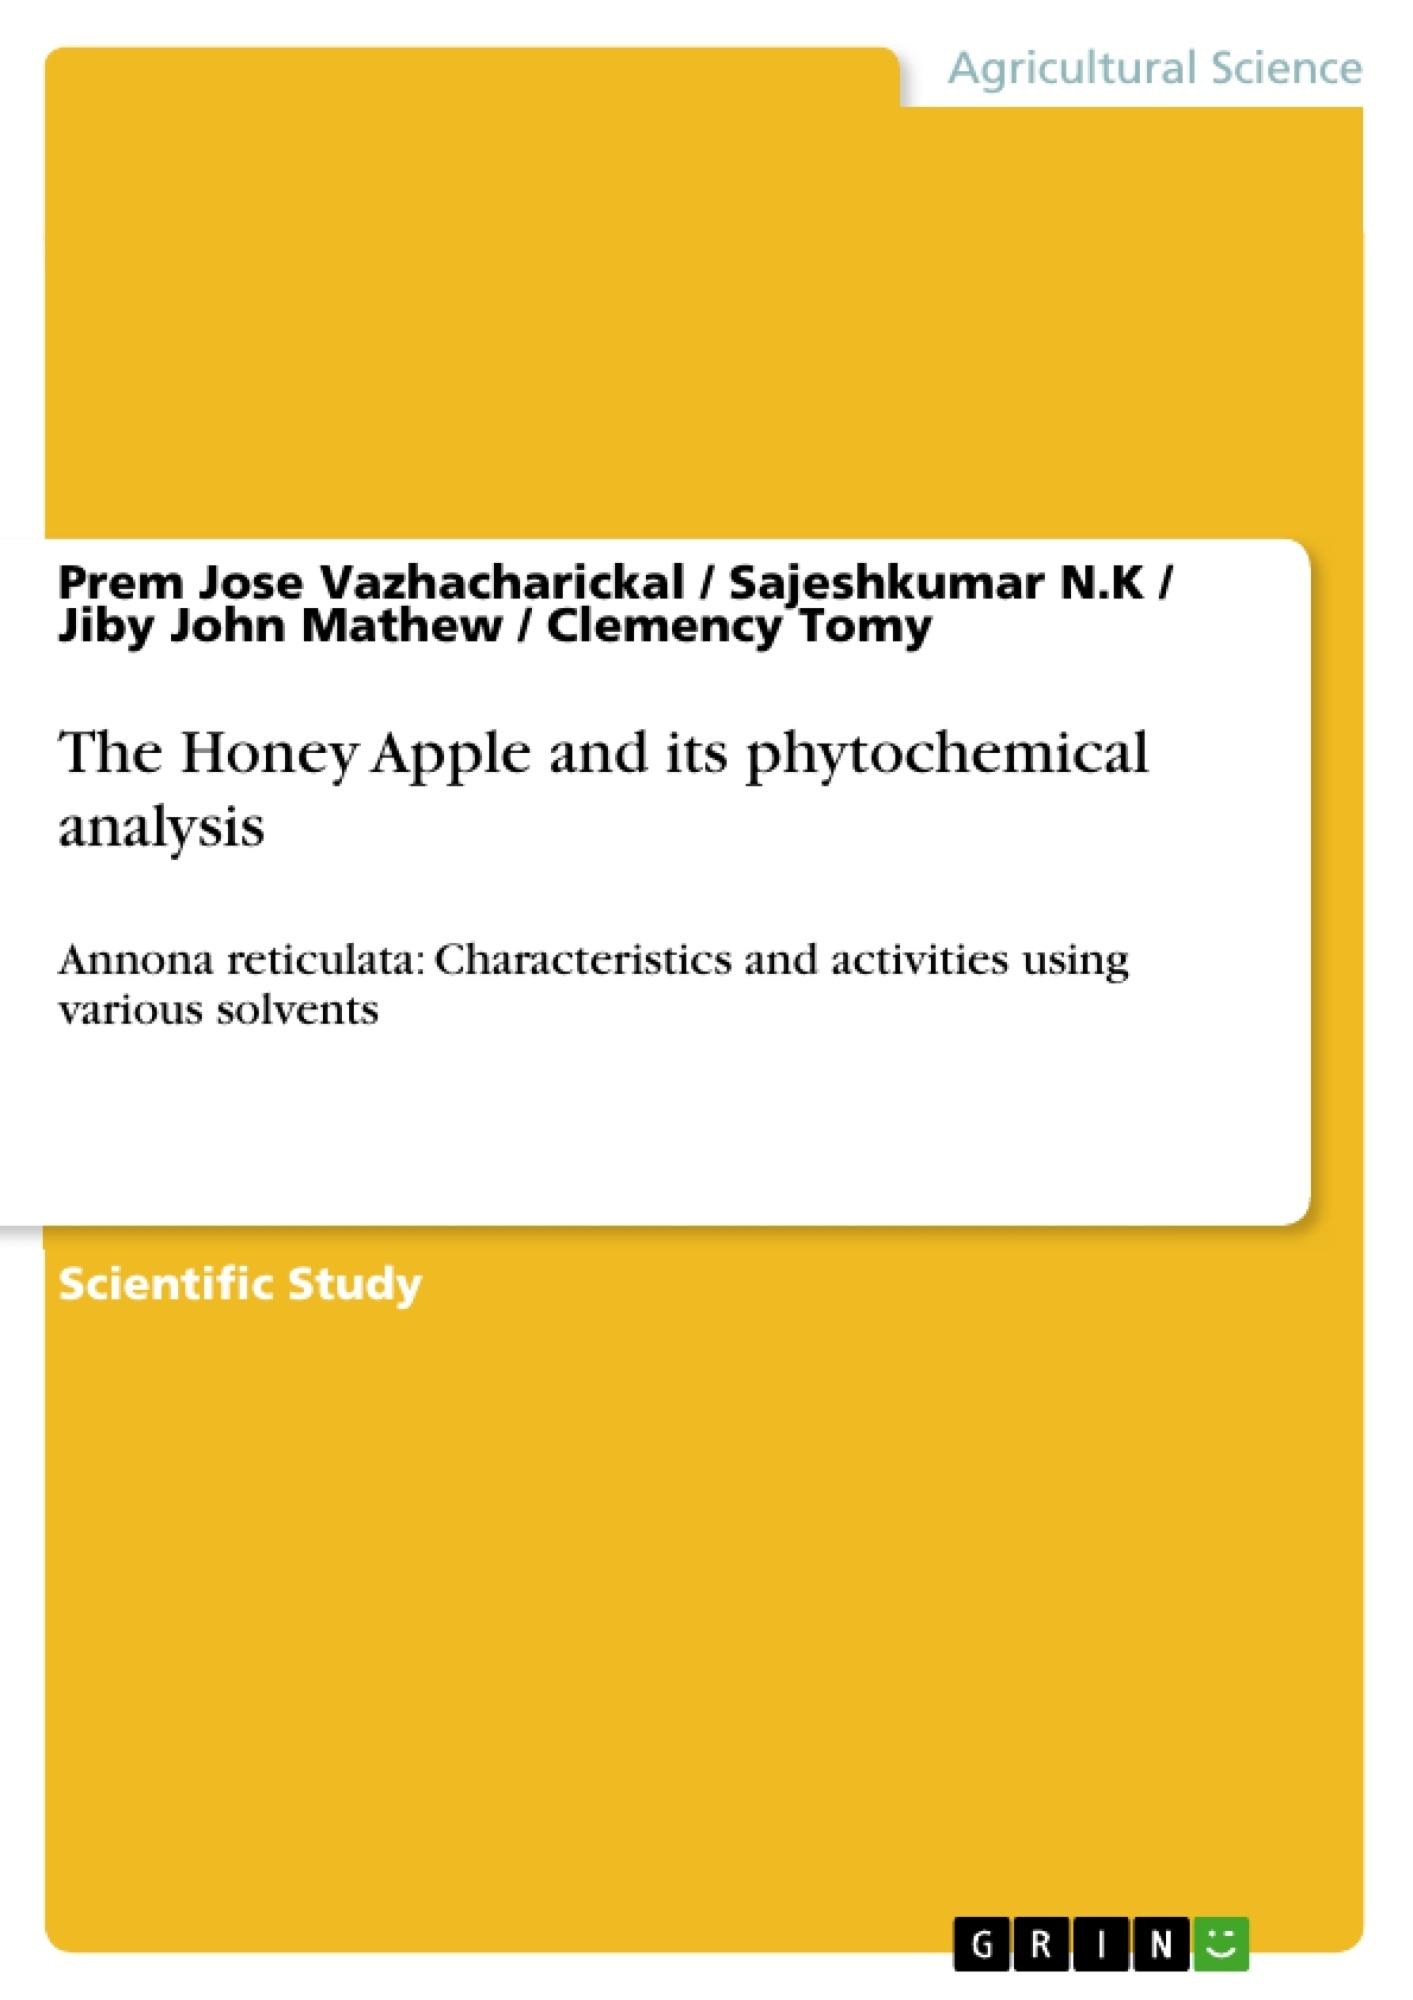 Title: The Honey Apple and its phytochemical analysis